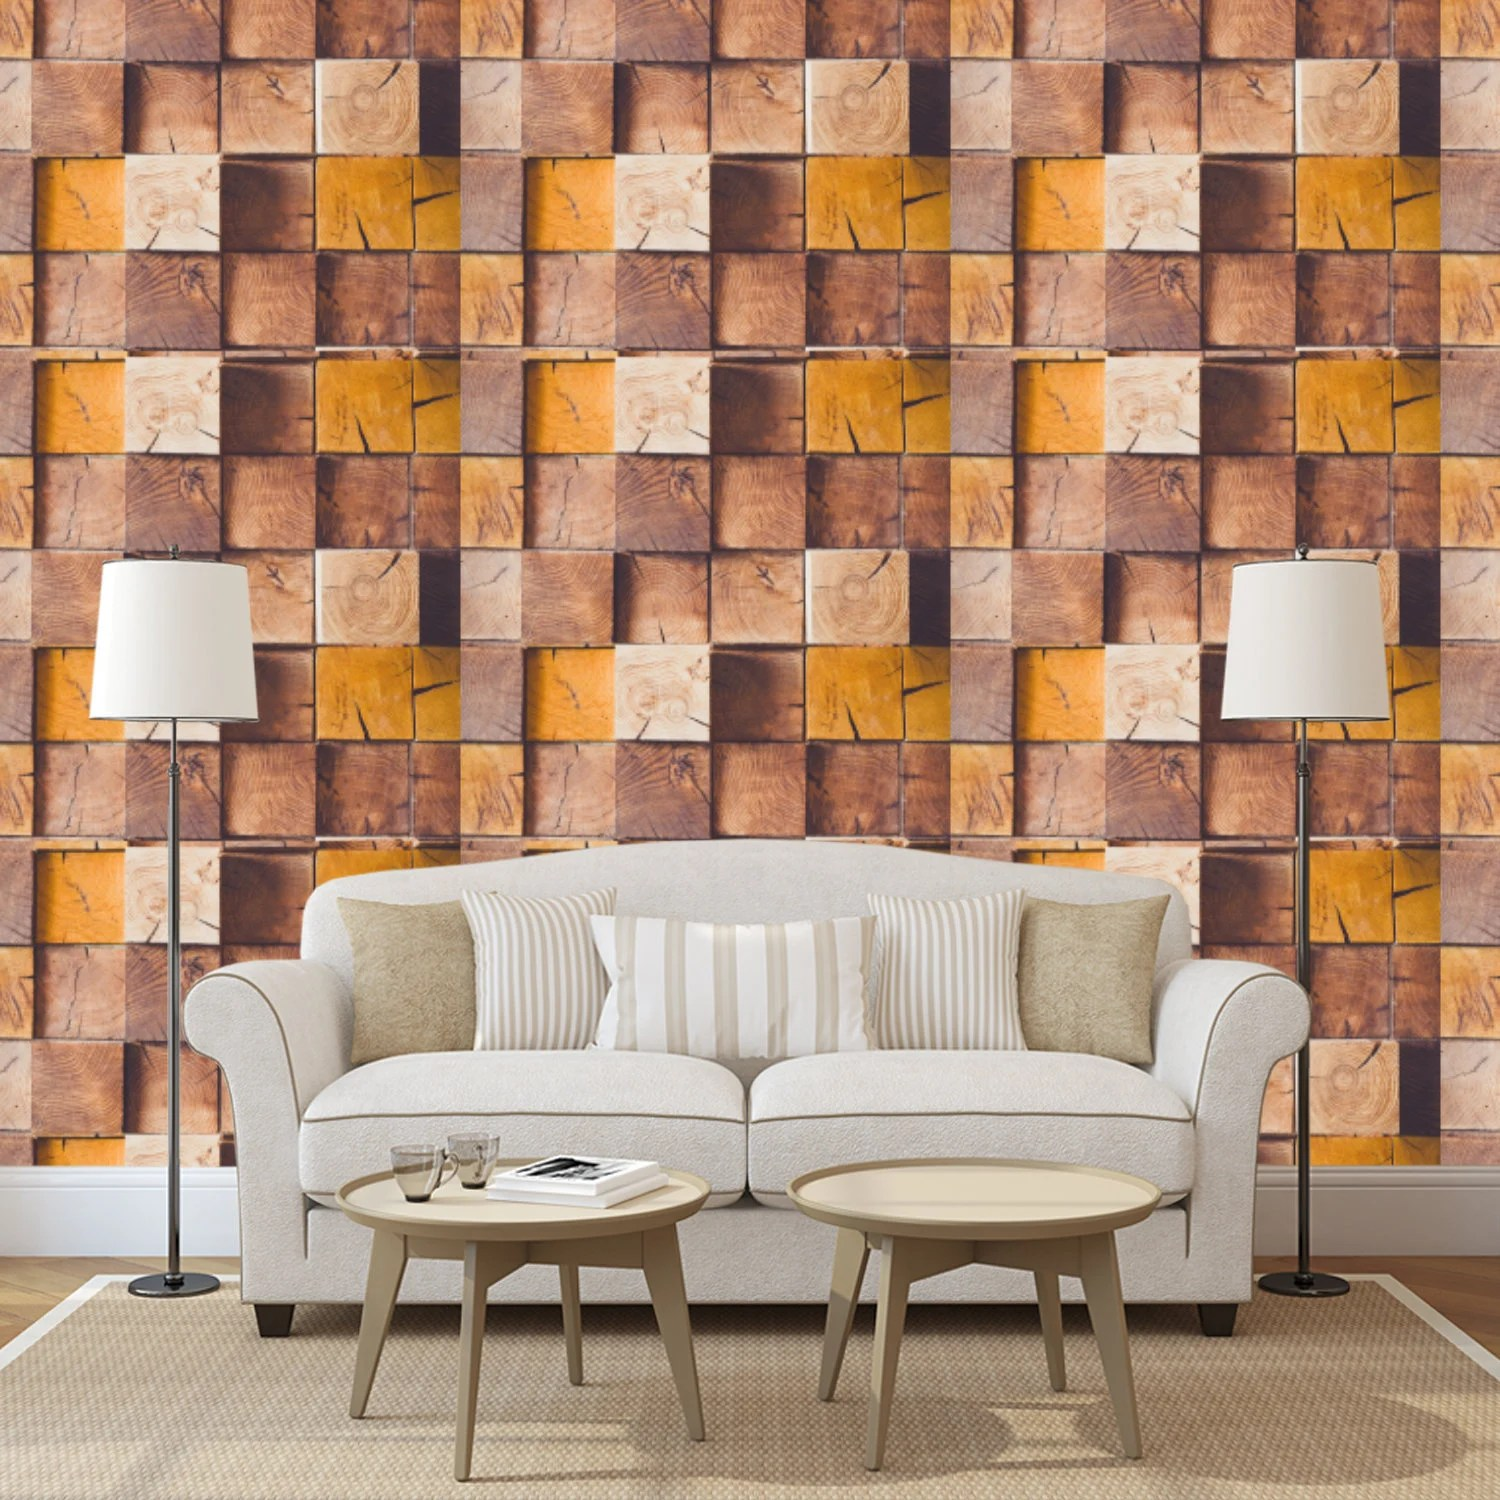 3d Wall Decor 3d Wood Wall Decor With Old Wood Blocks Wood Wallpaper Wood Wall Mural Wood Wall Covering 3d Wall Panel Removable Peel And Stick Wallpaper